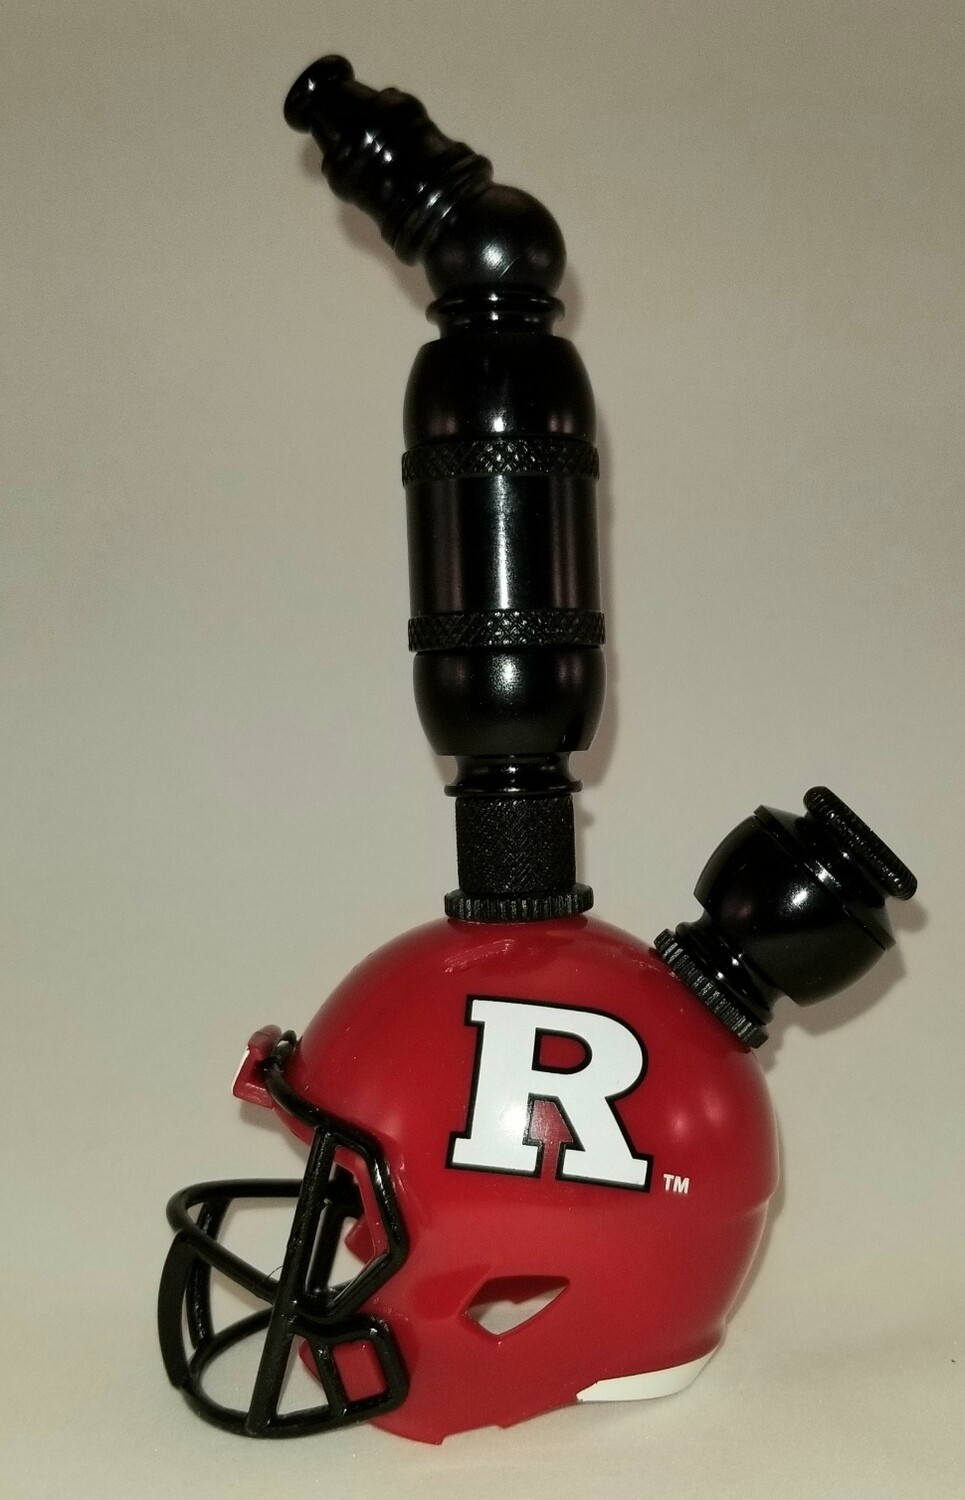 """RUTGERS SCARLET KNIGHTS """"BAD ASS"""" FOOTBALL HELMET SMOKING PIPES Upright/Black Anodized"""